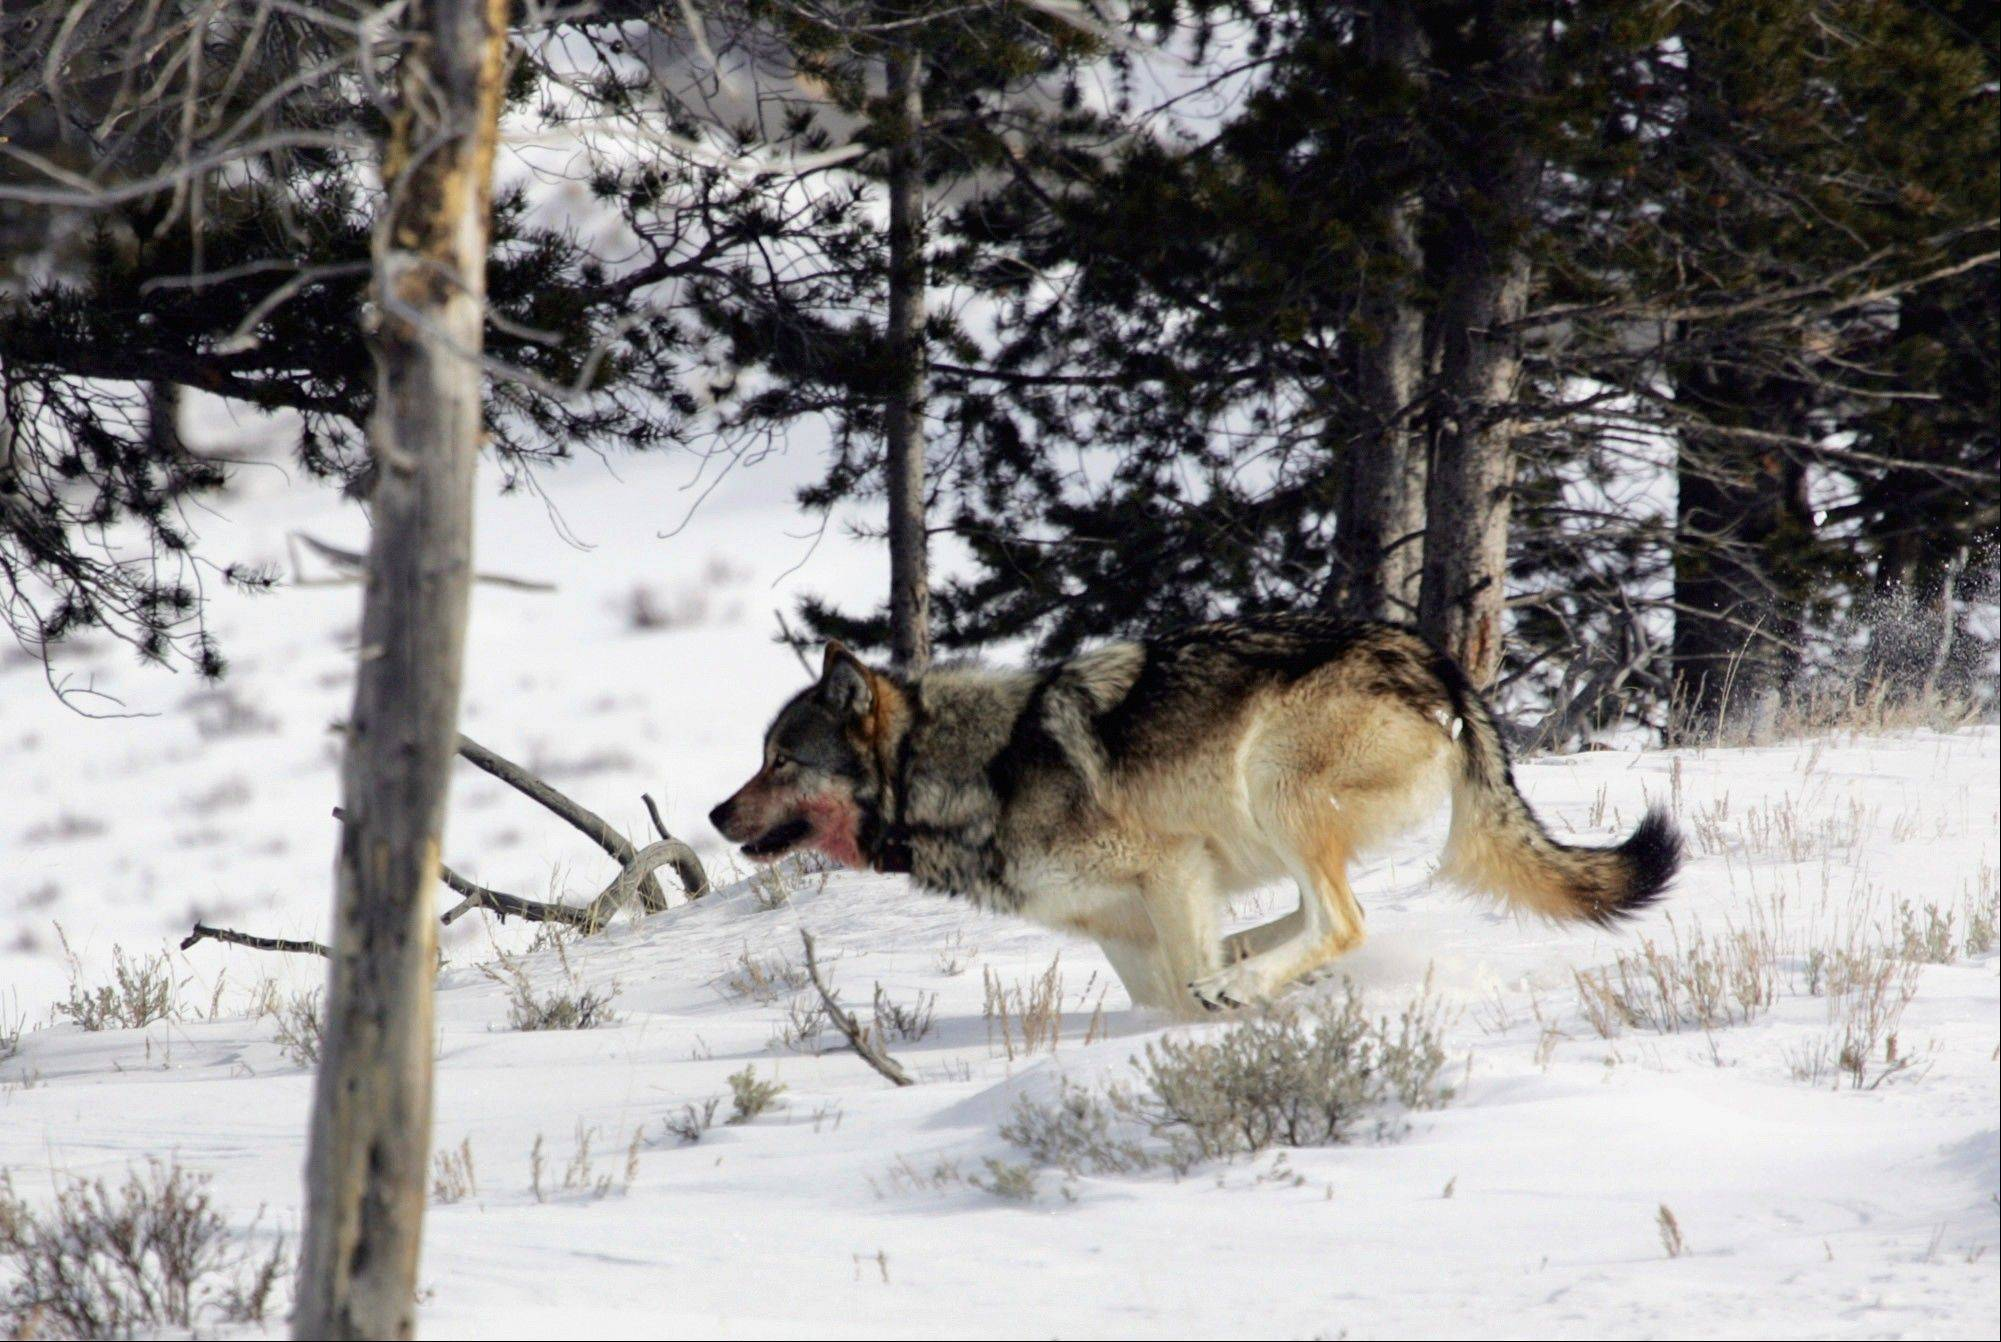 Associated Press/Feb. 16, 2006A gray wolf runs near Blacktail Pond in Yellowstone National Park in Park County, Wyo.